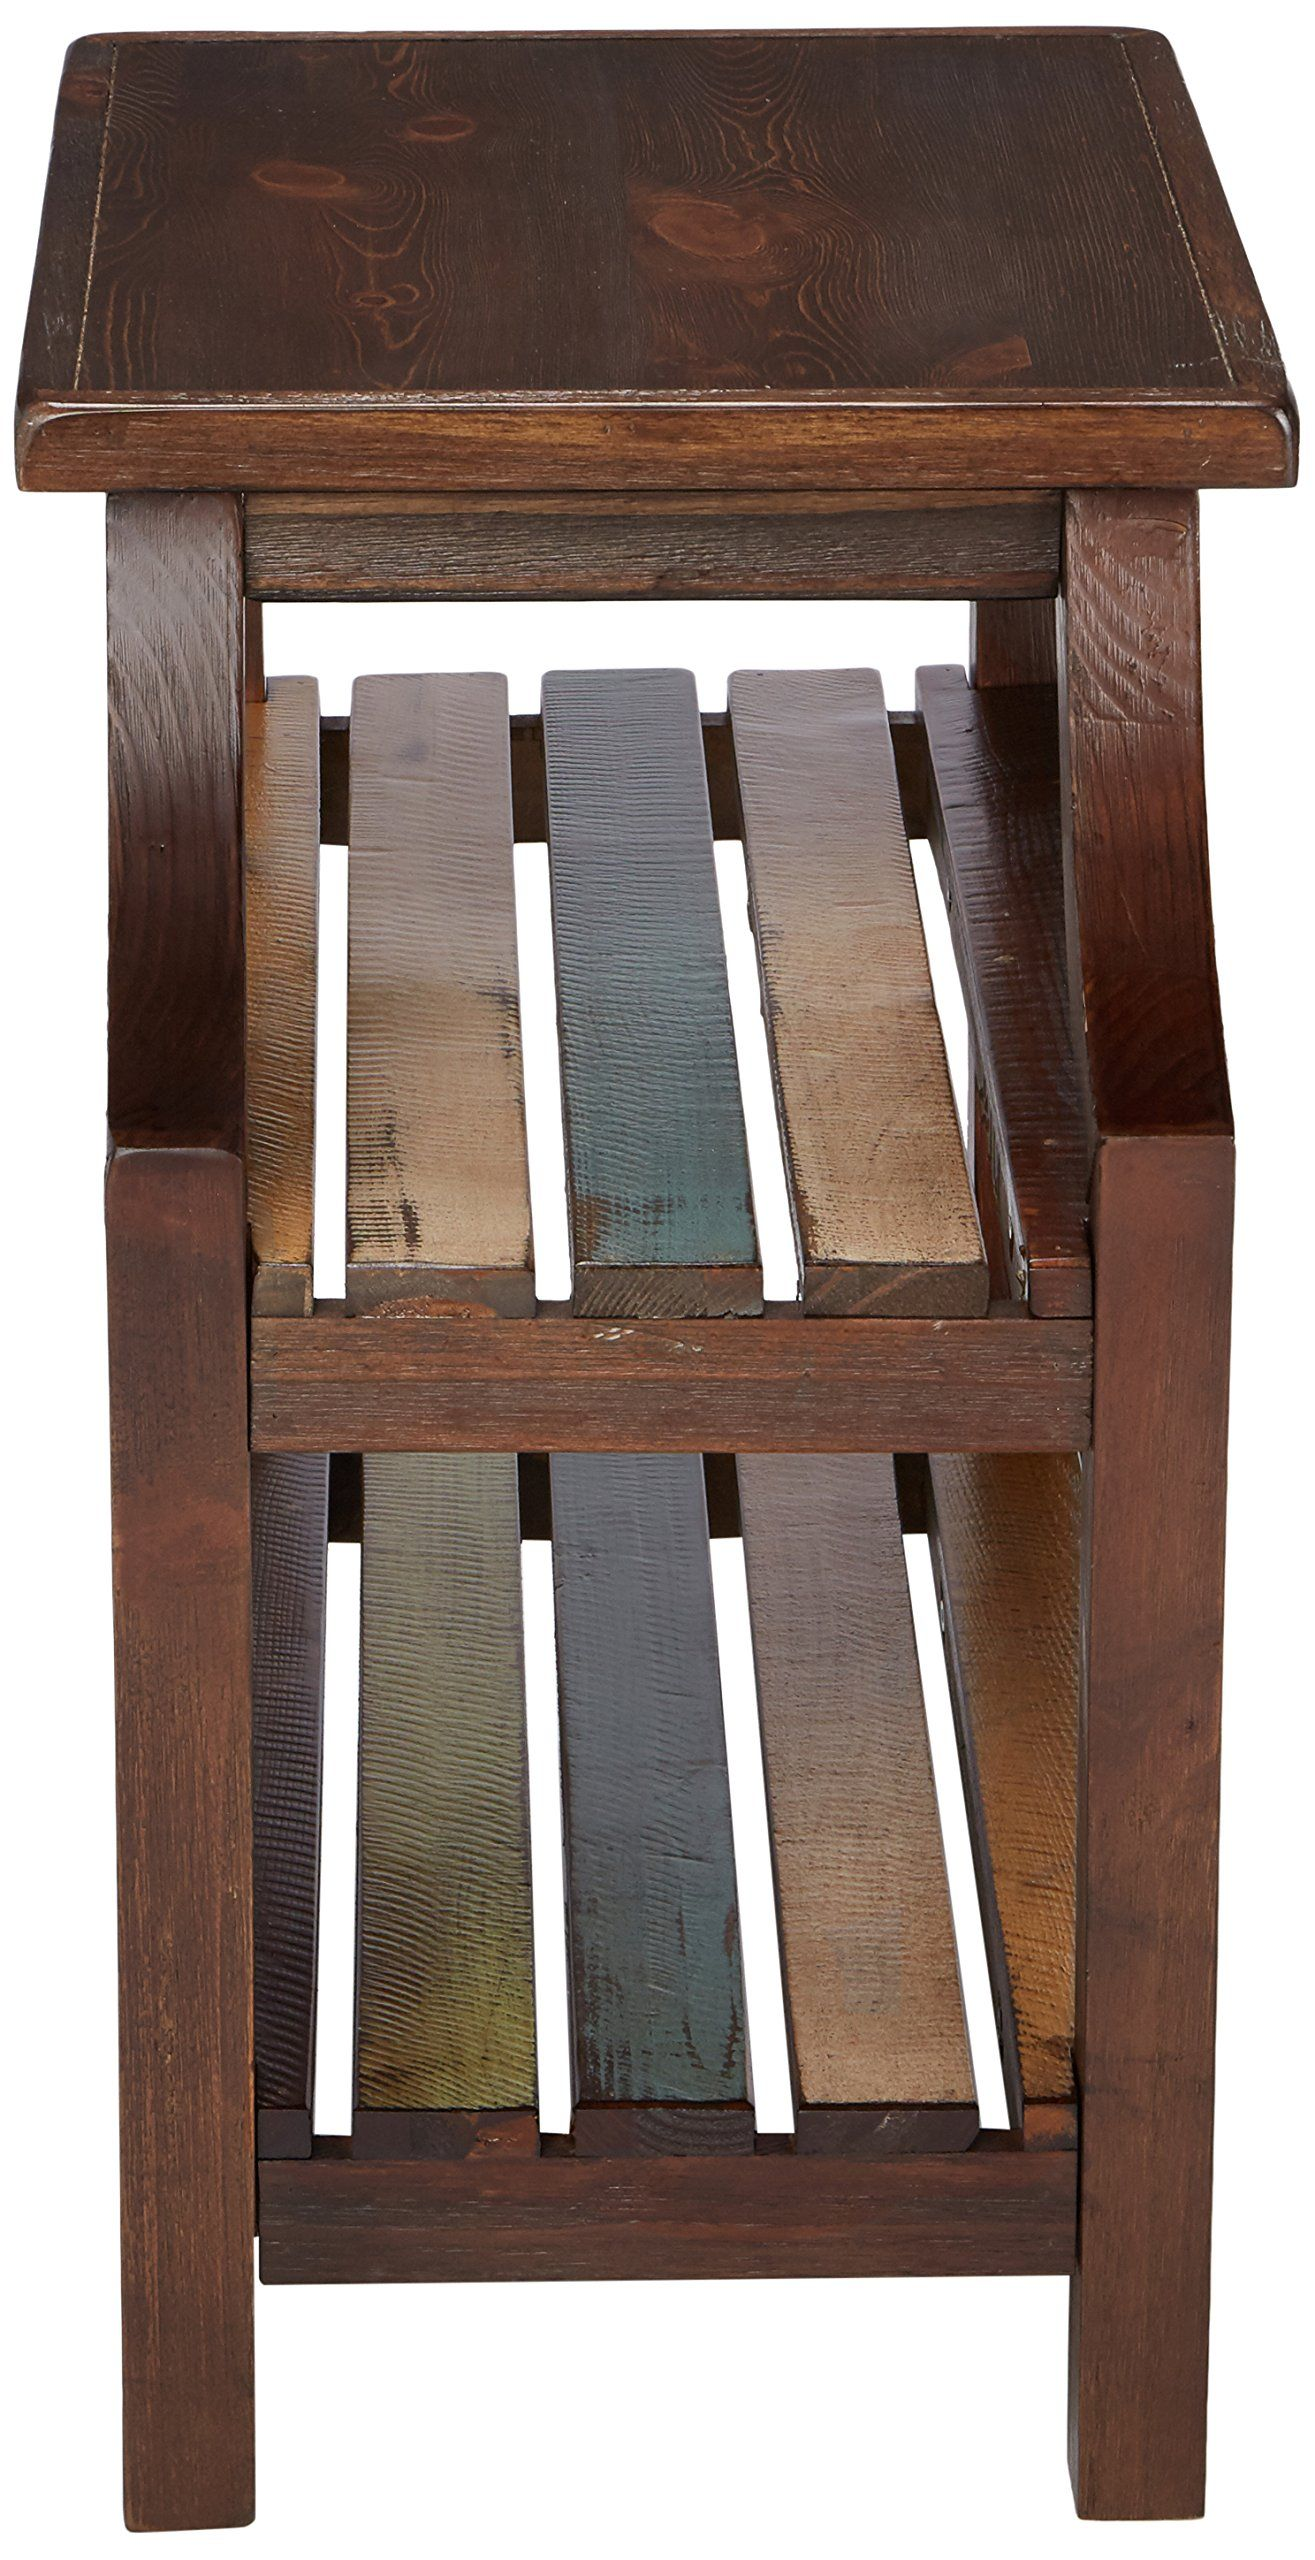 Ashley Furniture Signature Design Mestler Chair Side End Table Rectangular Rustic Brown Find Out Signature Design By Ashley Signature Design End Tables [ 2560 x 1315 Pixel ]